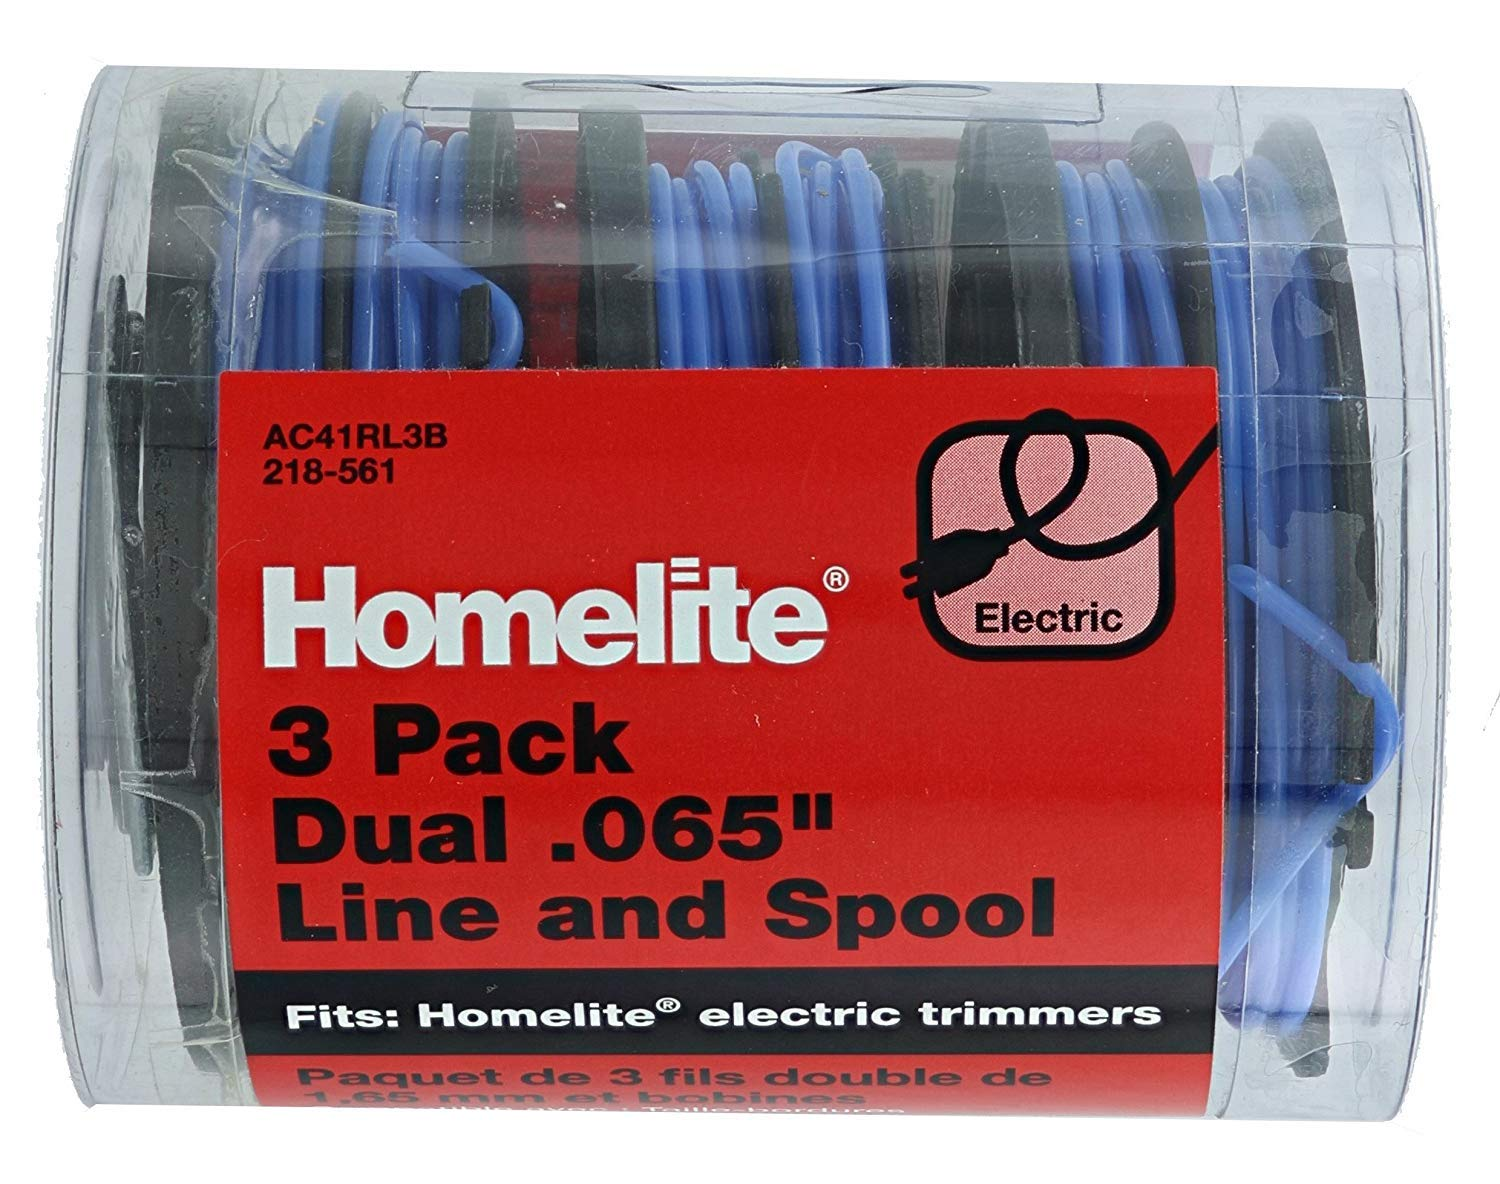 Homelite Genuine OEM AC41RL3 Autofeed Dual .065'' Replacement Line and Spool Pack for Homelite Electric String Trimmers (3 Pack) by Homelite